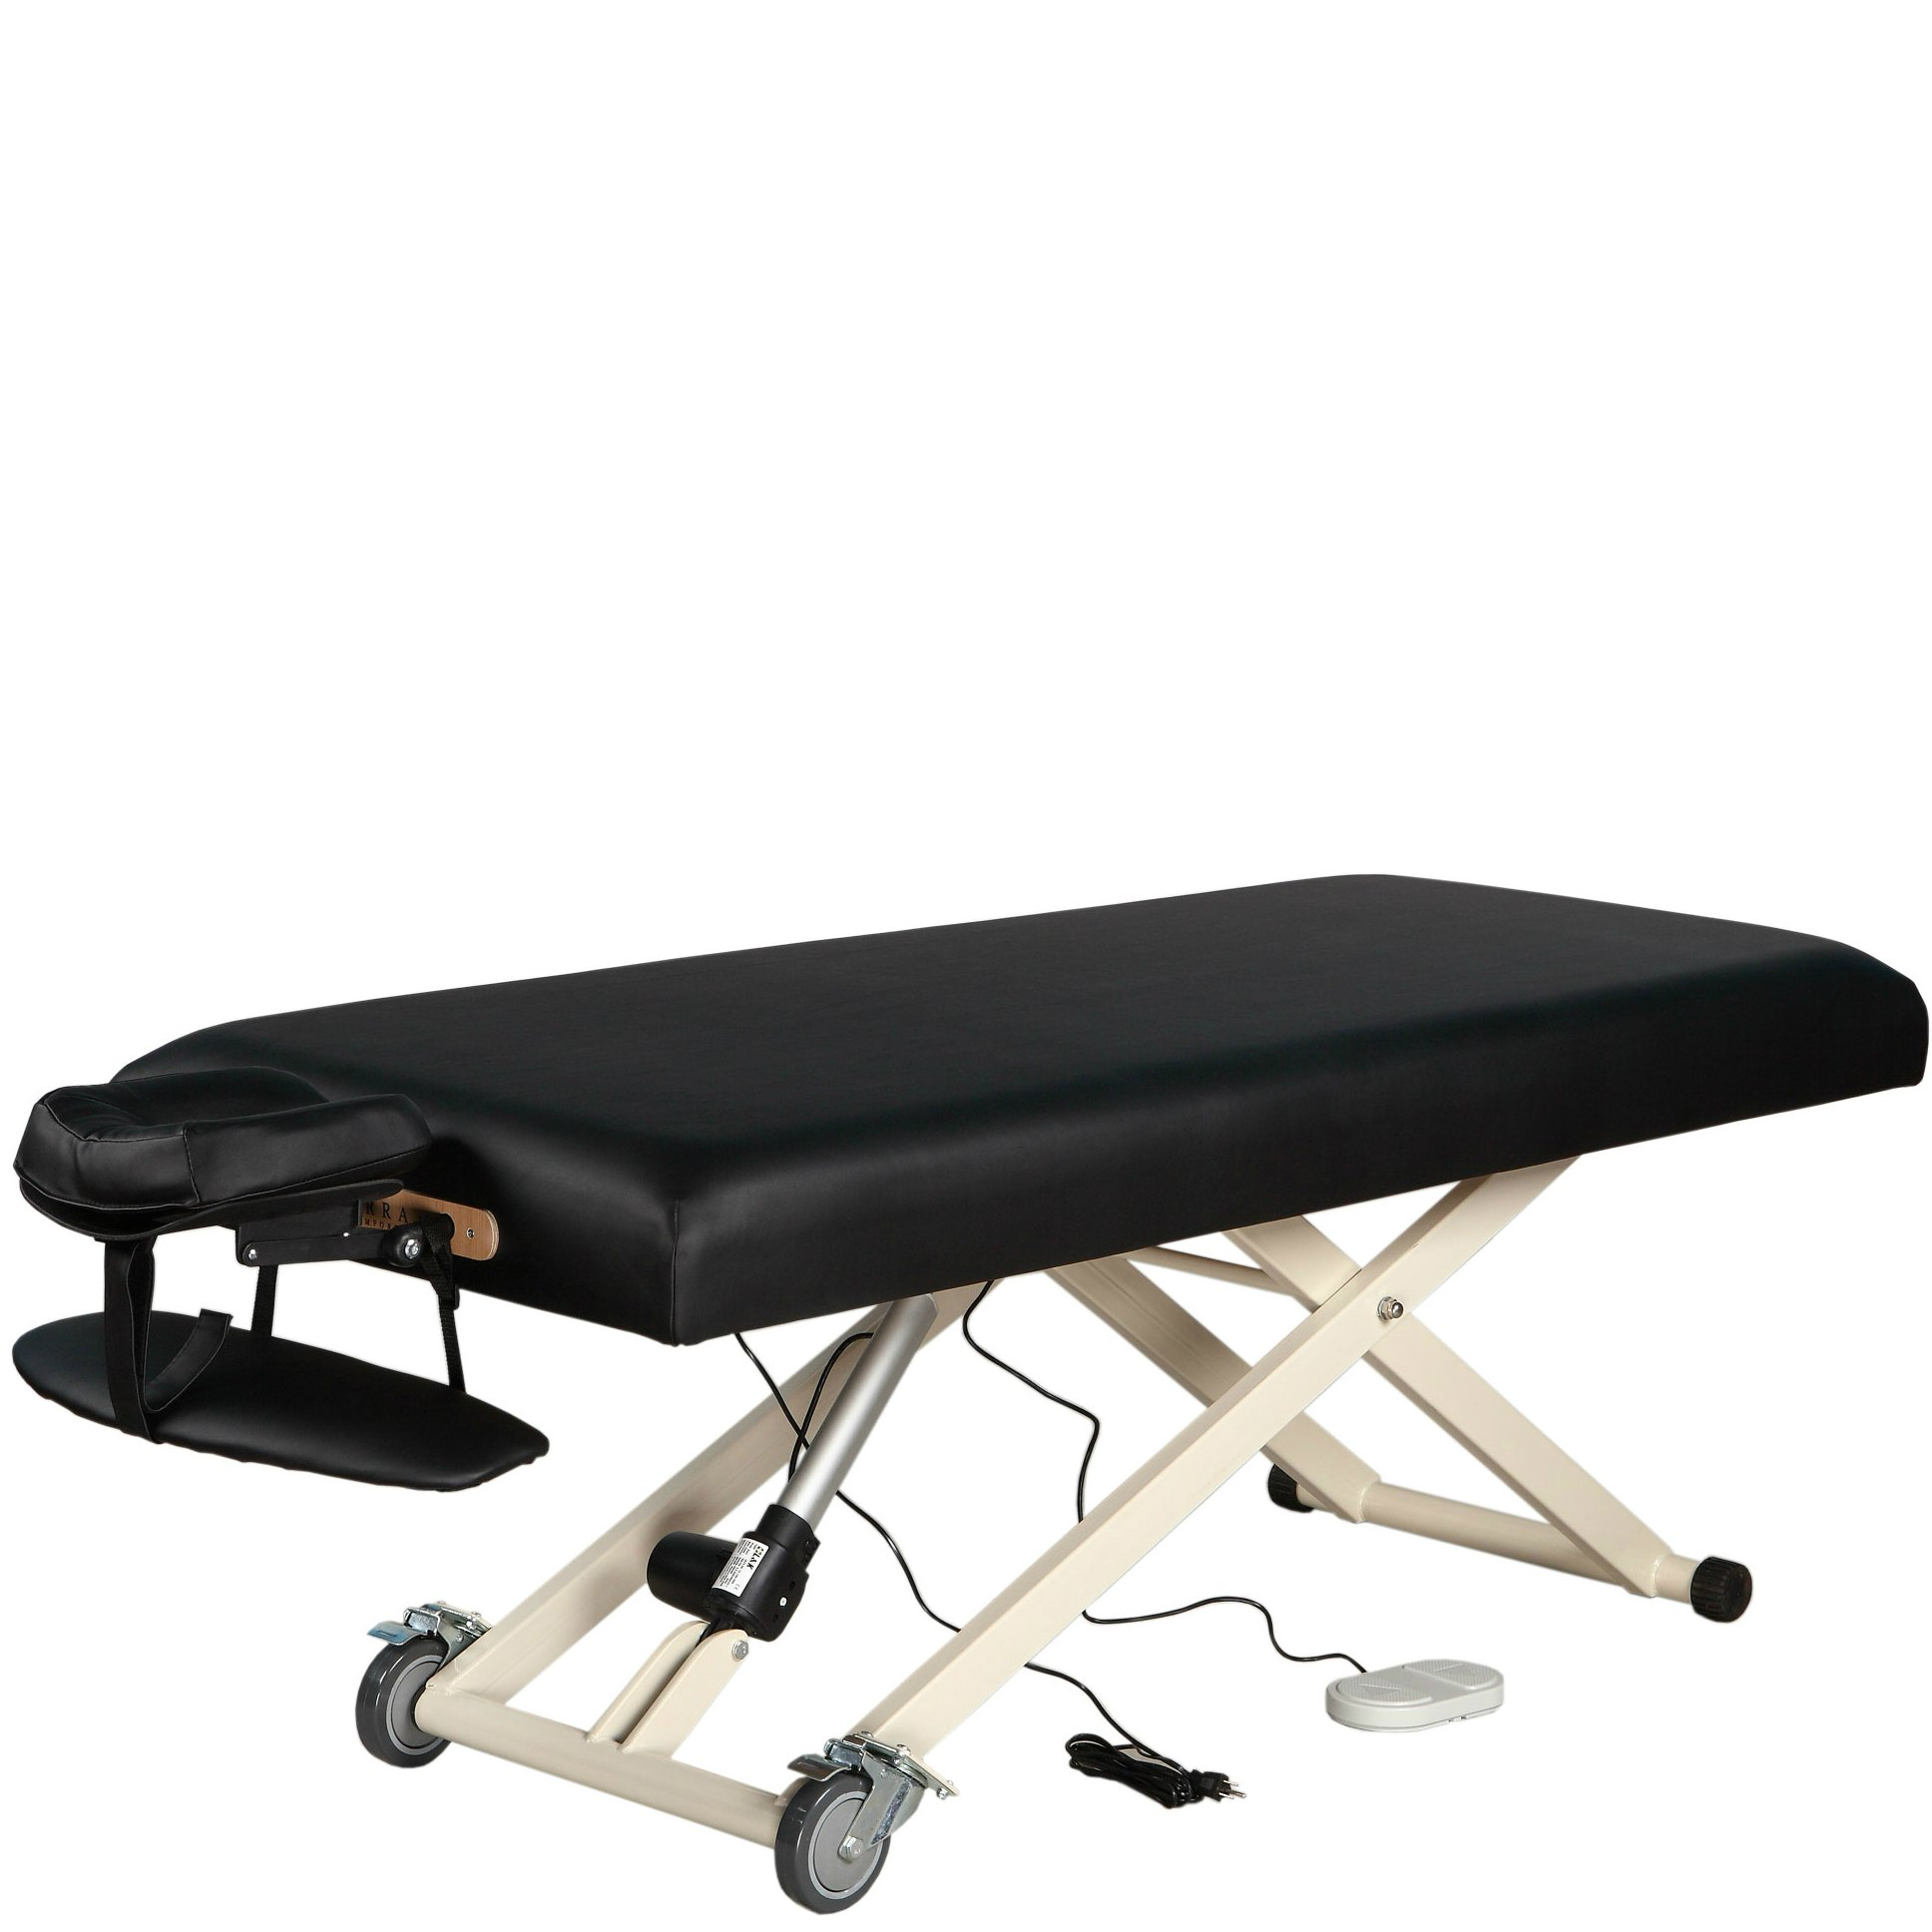 SierraComfort Electric Lift Massage Table, Black by SierraComfort (Image #1)